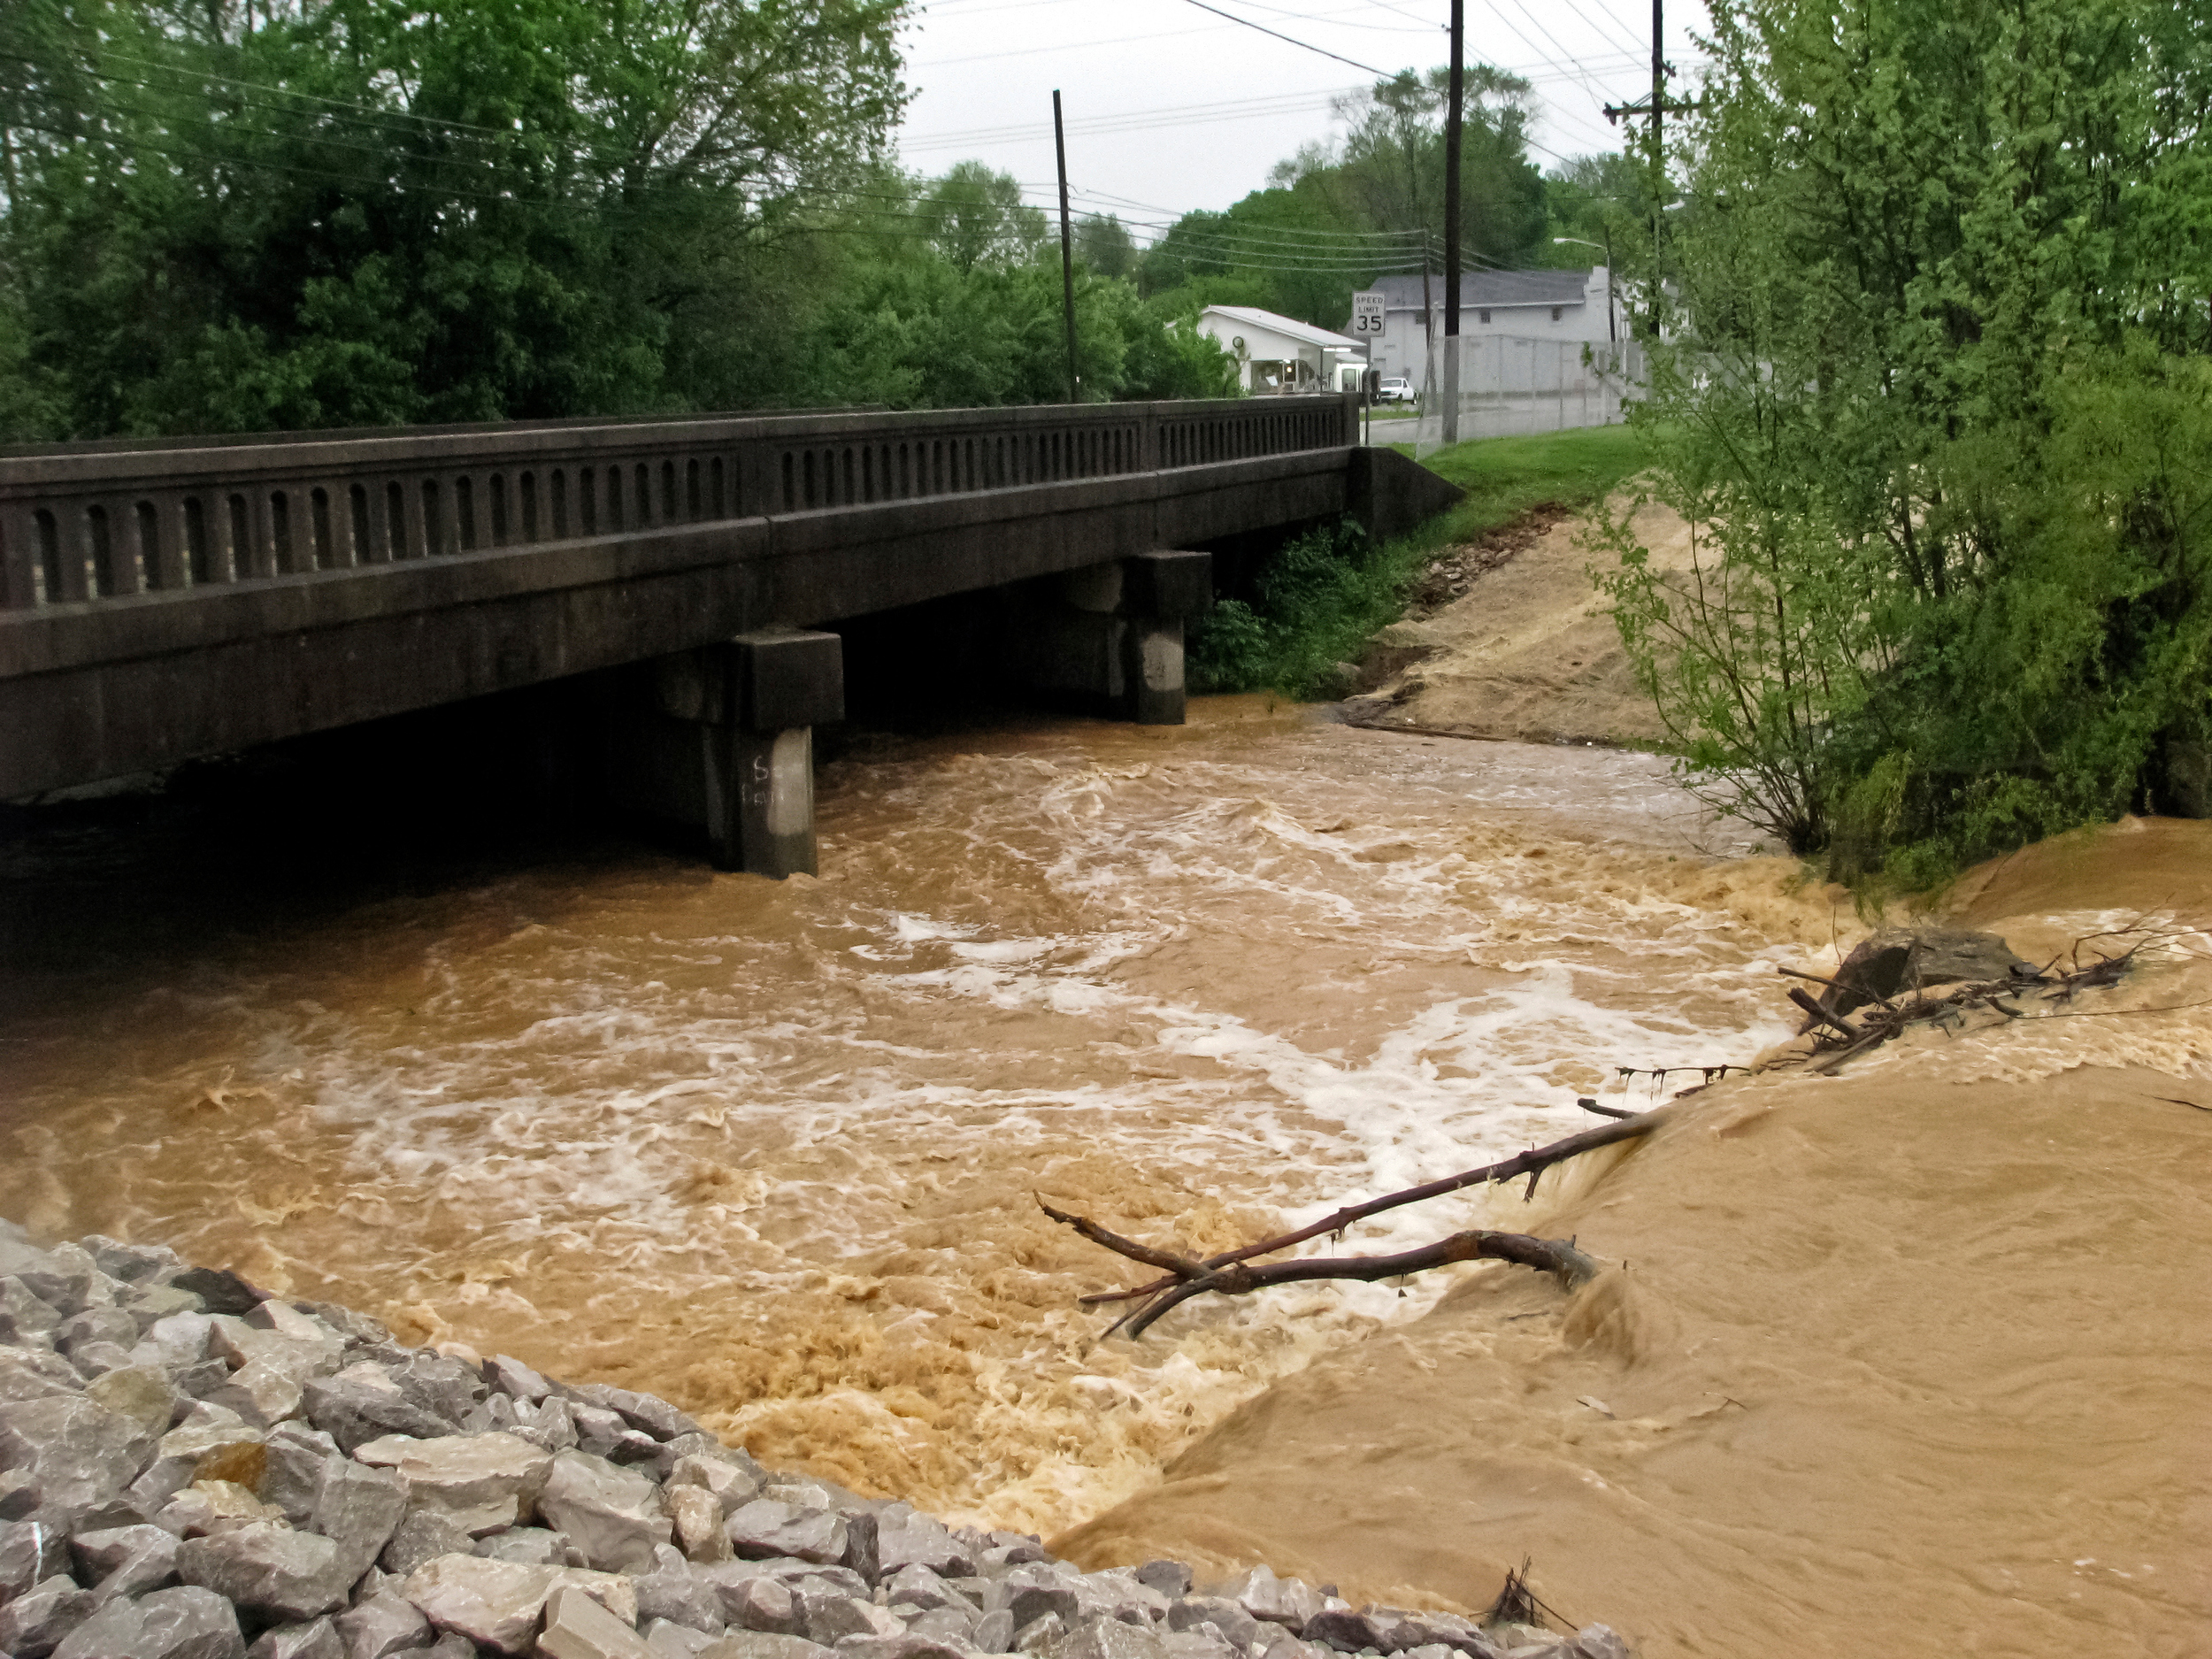 Gorin Park's creek rapidly flows under the bridge on East Main Street in Glasgow.